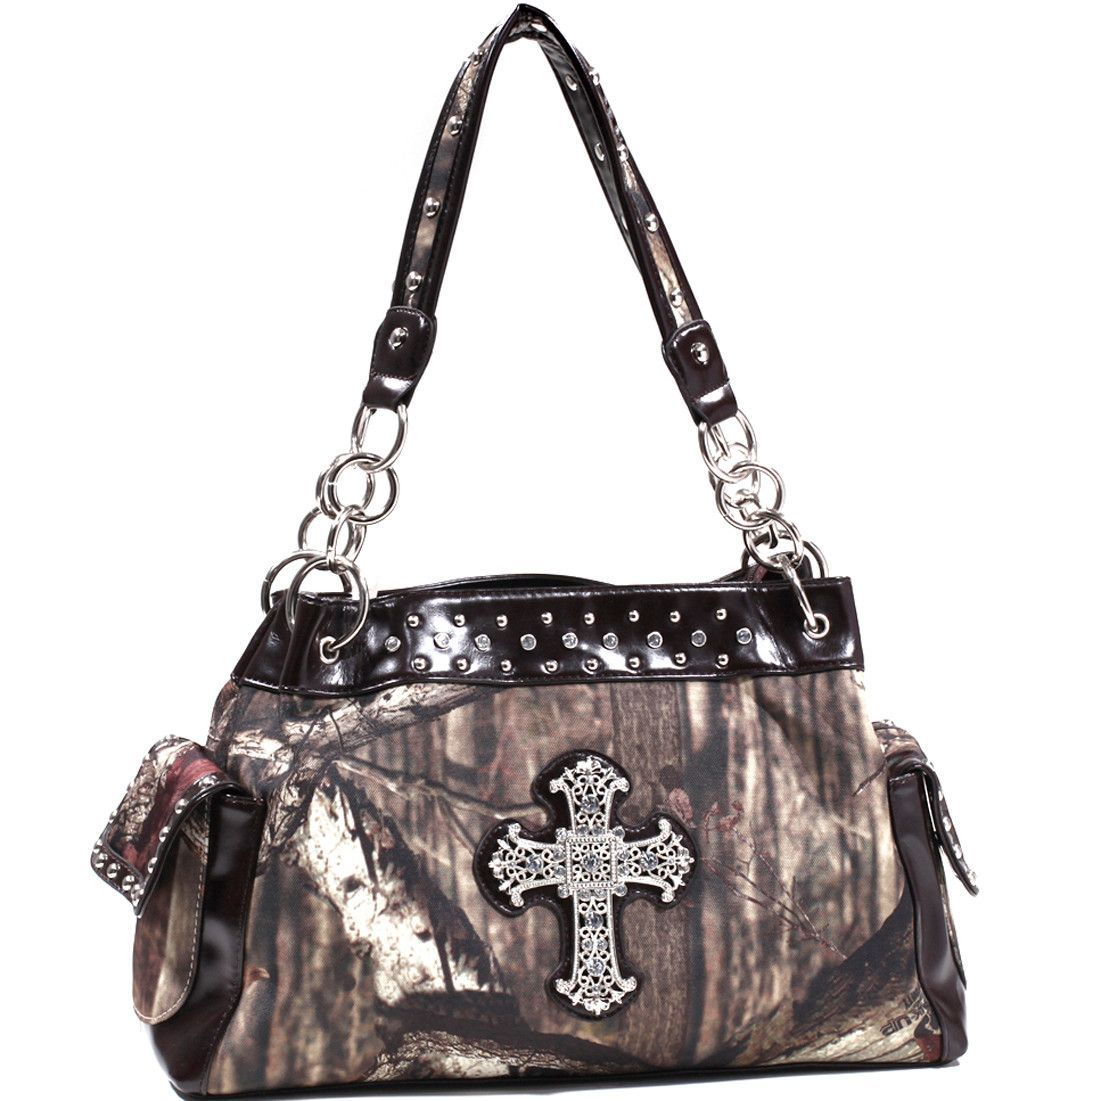 Mossy Oak Studded Camouflage Shoulder Bag w/ Rhinestone Cross - Camouflage/Co...